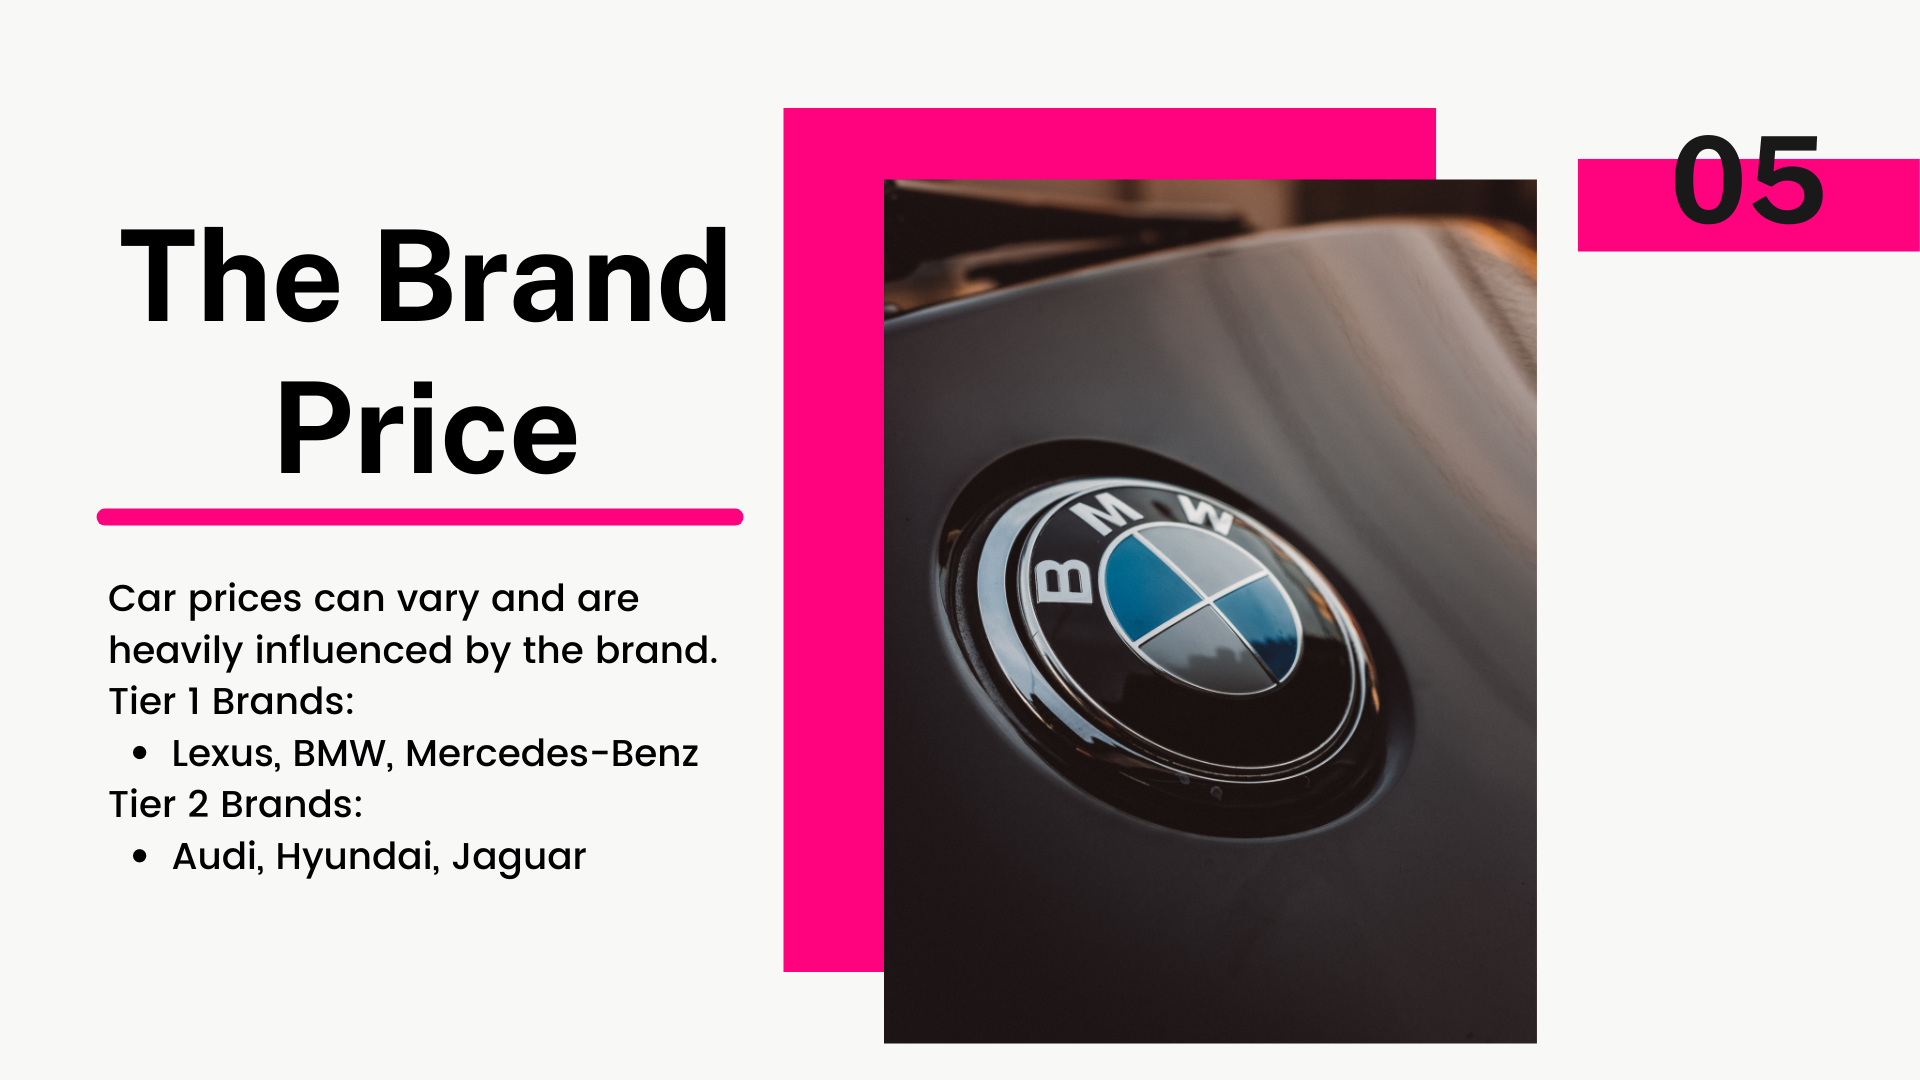 Car prices can vary and are heavily influenced by the brand. Tier 1 Brands: Lexus, BMW, Mercedes-Benz. Tier 2 Brands: Audi, Hyundai, Jaguar.